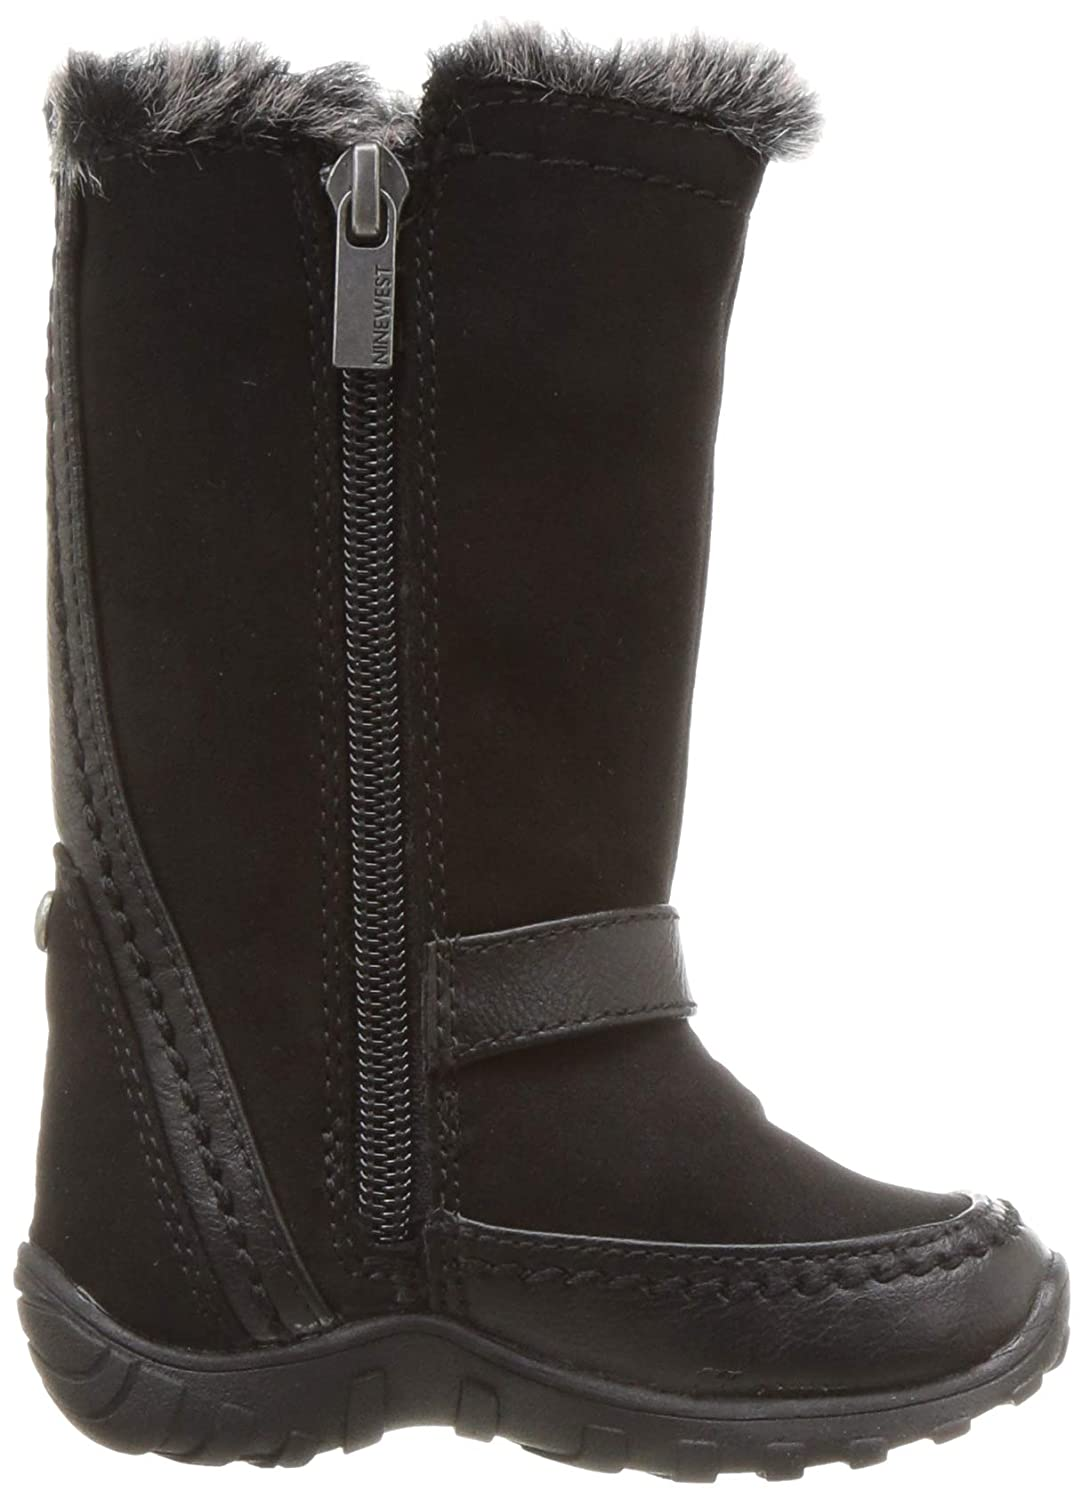 M090 M US Toddler Black Nine West Girls NAYDINE Snow Boot